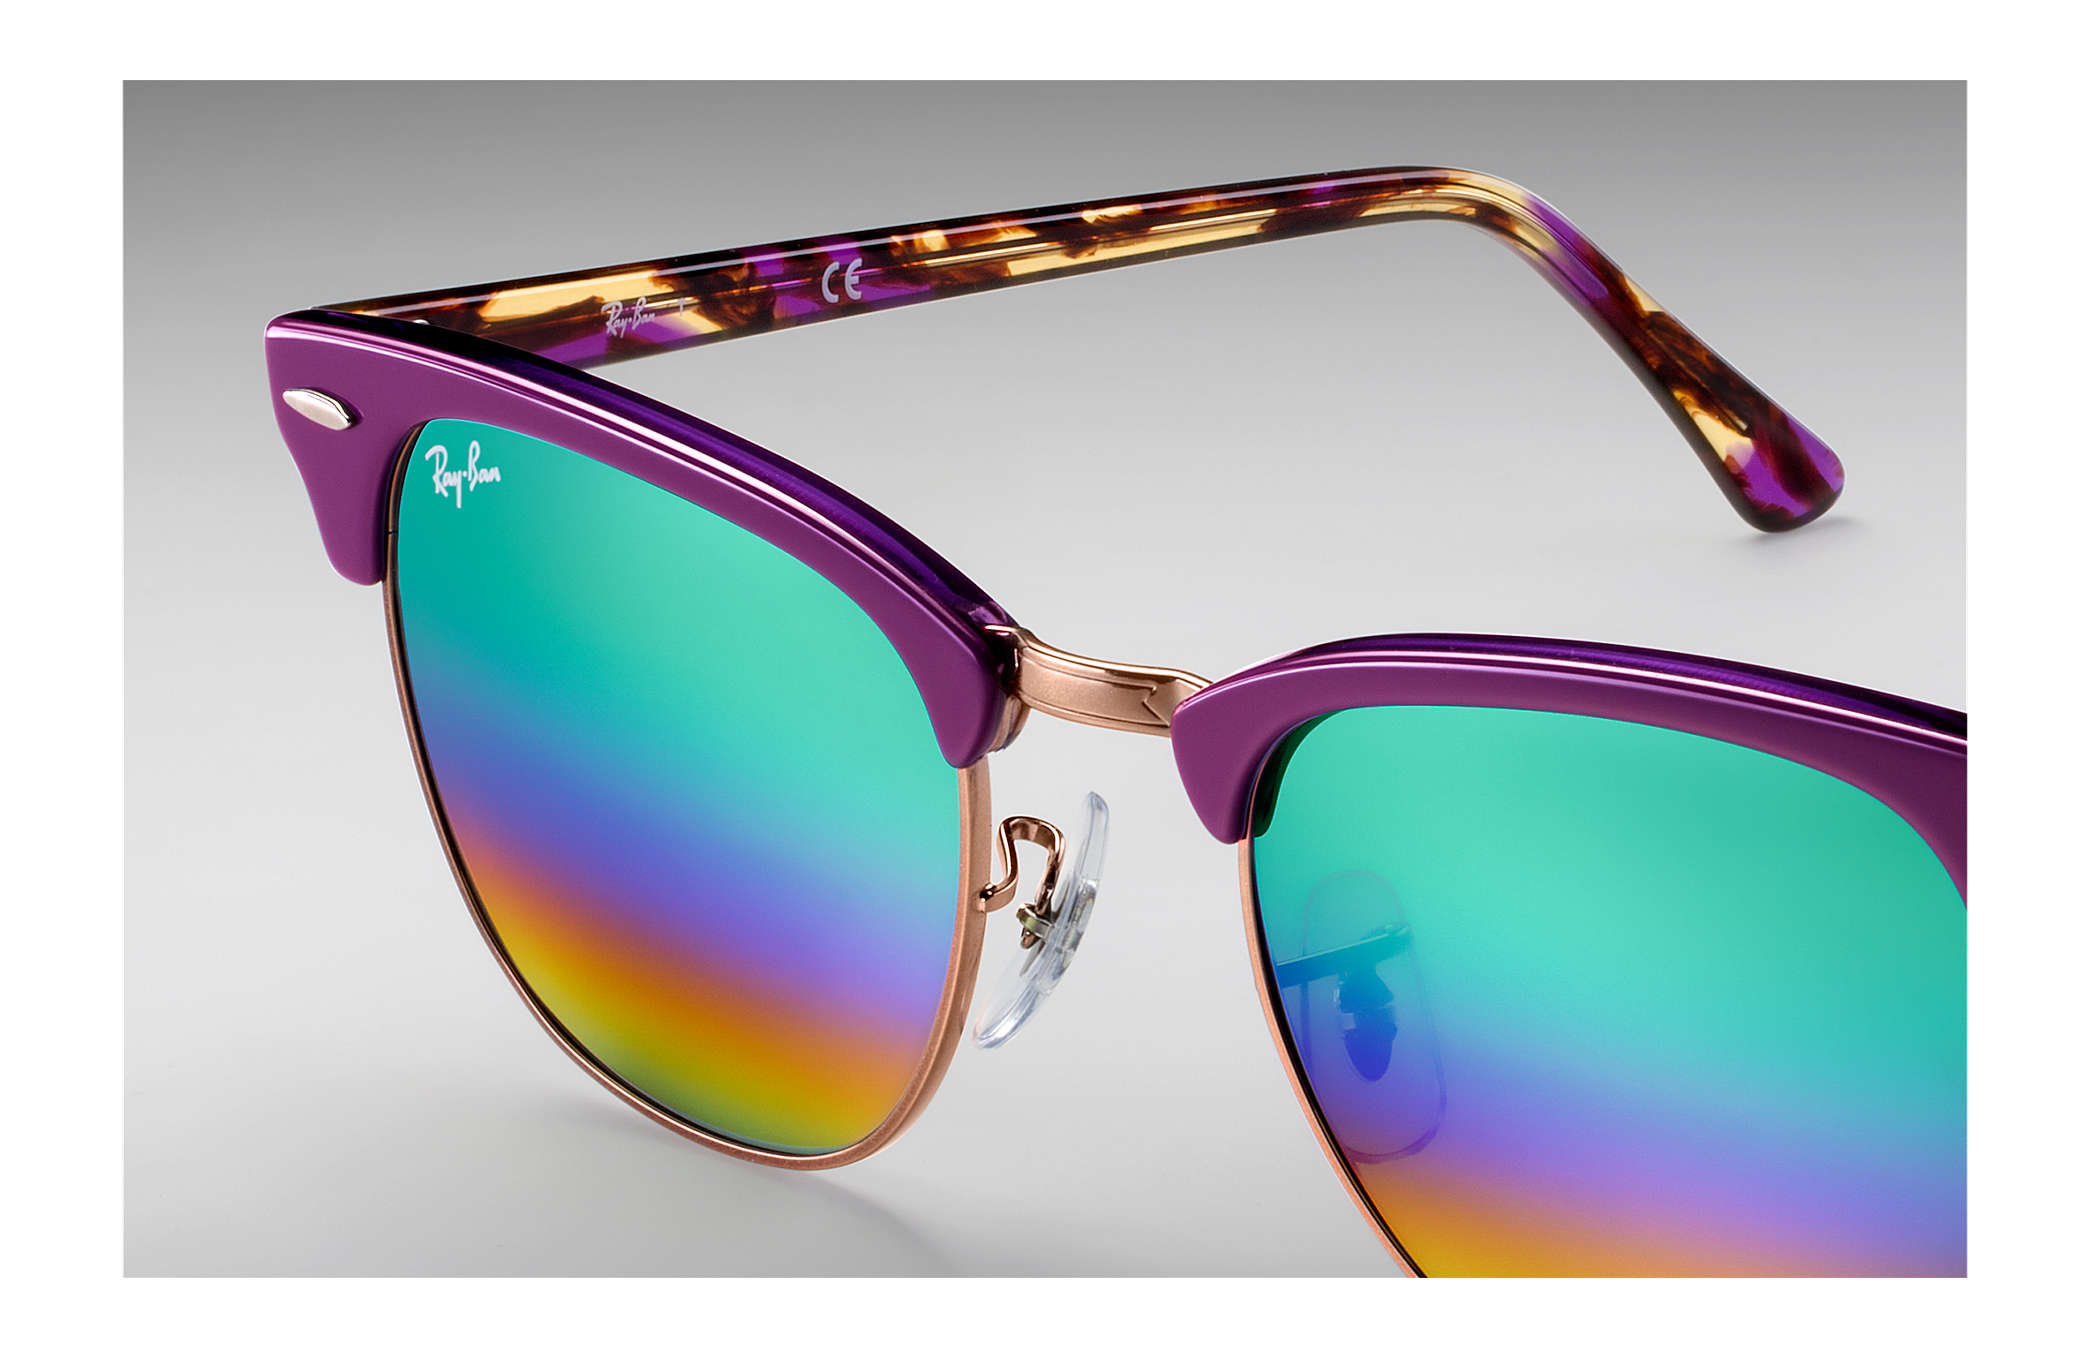 3daa47da190fc From re-engineered classics to chic new models, celebrate iconic design  your way. Fresh. Bold. Individual. Make your look iconic with Ray-Ban  spirit.